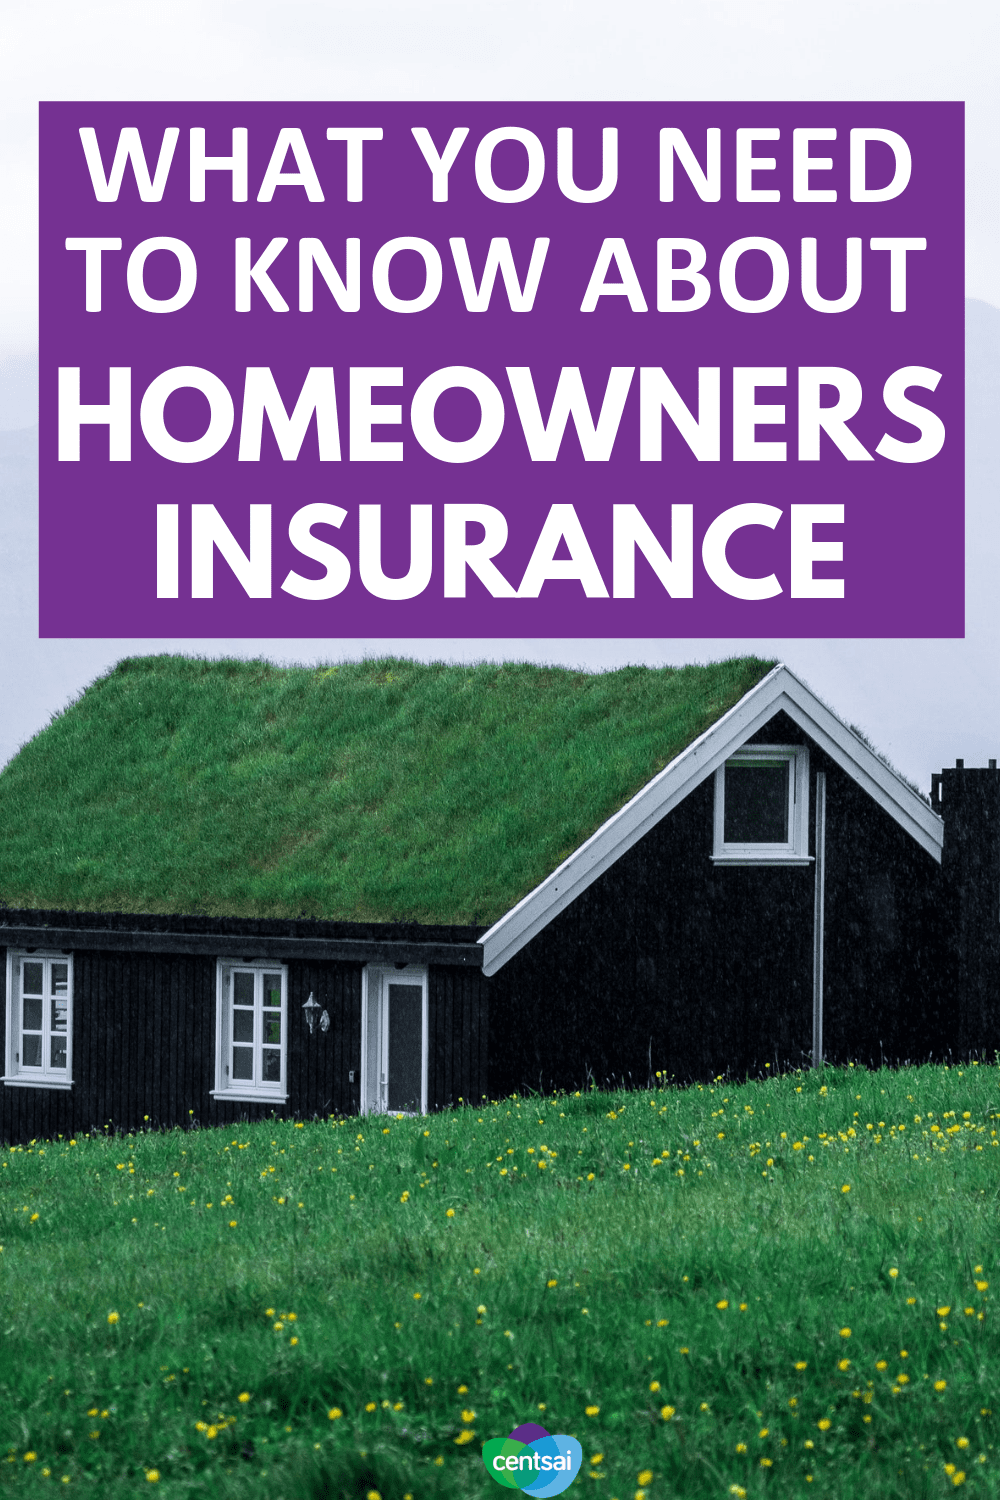 What to Know About Homeowners Insurance Get the Facts in